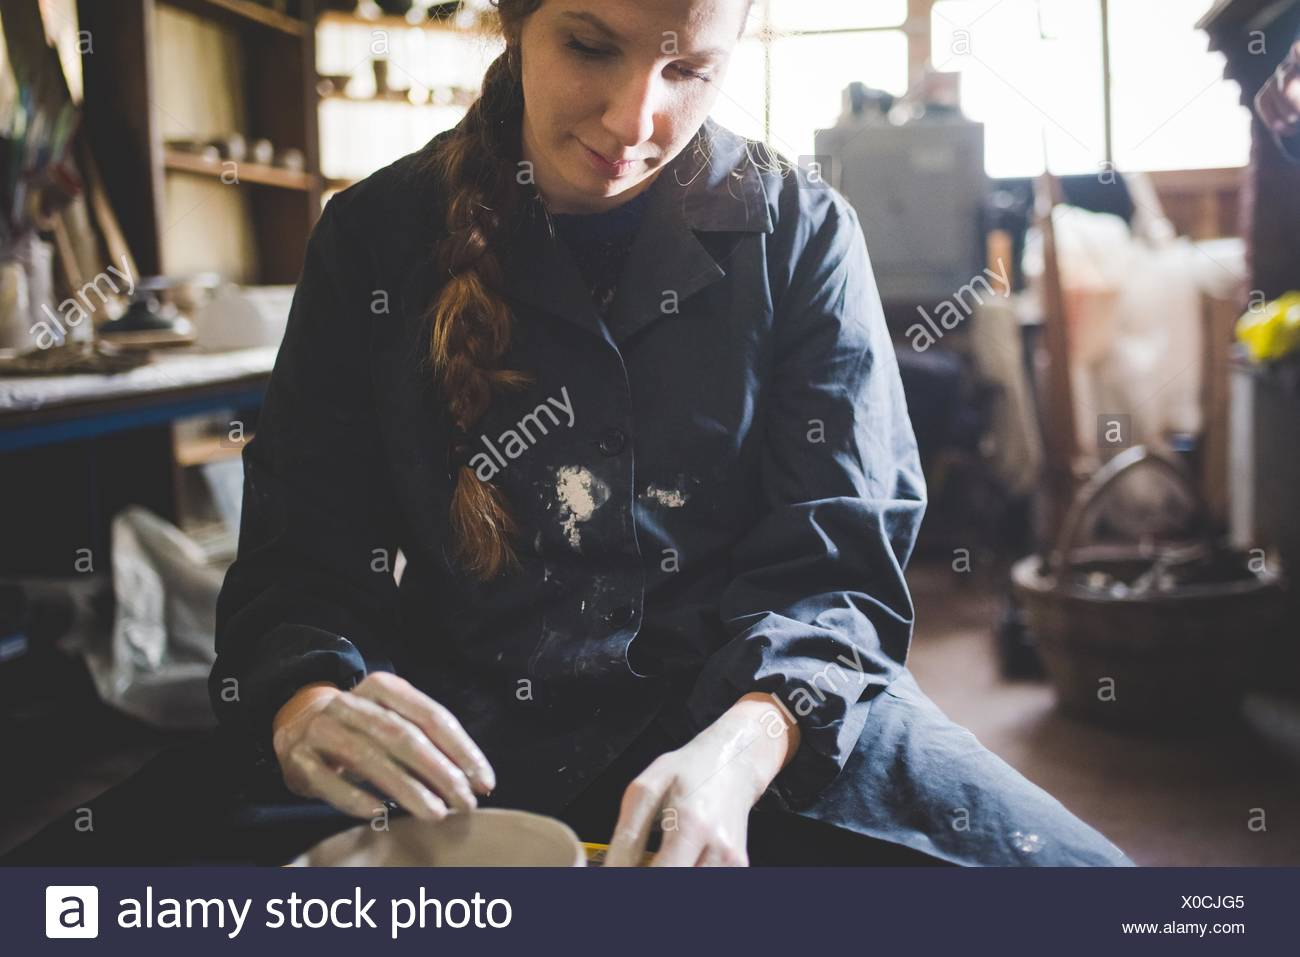 Front view of young woman sitting at pottery wheel looking down making clay pot - Stock Image